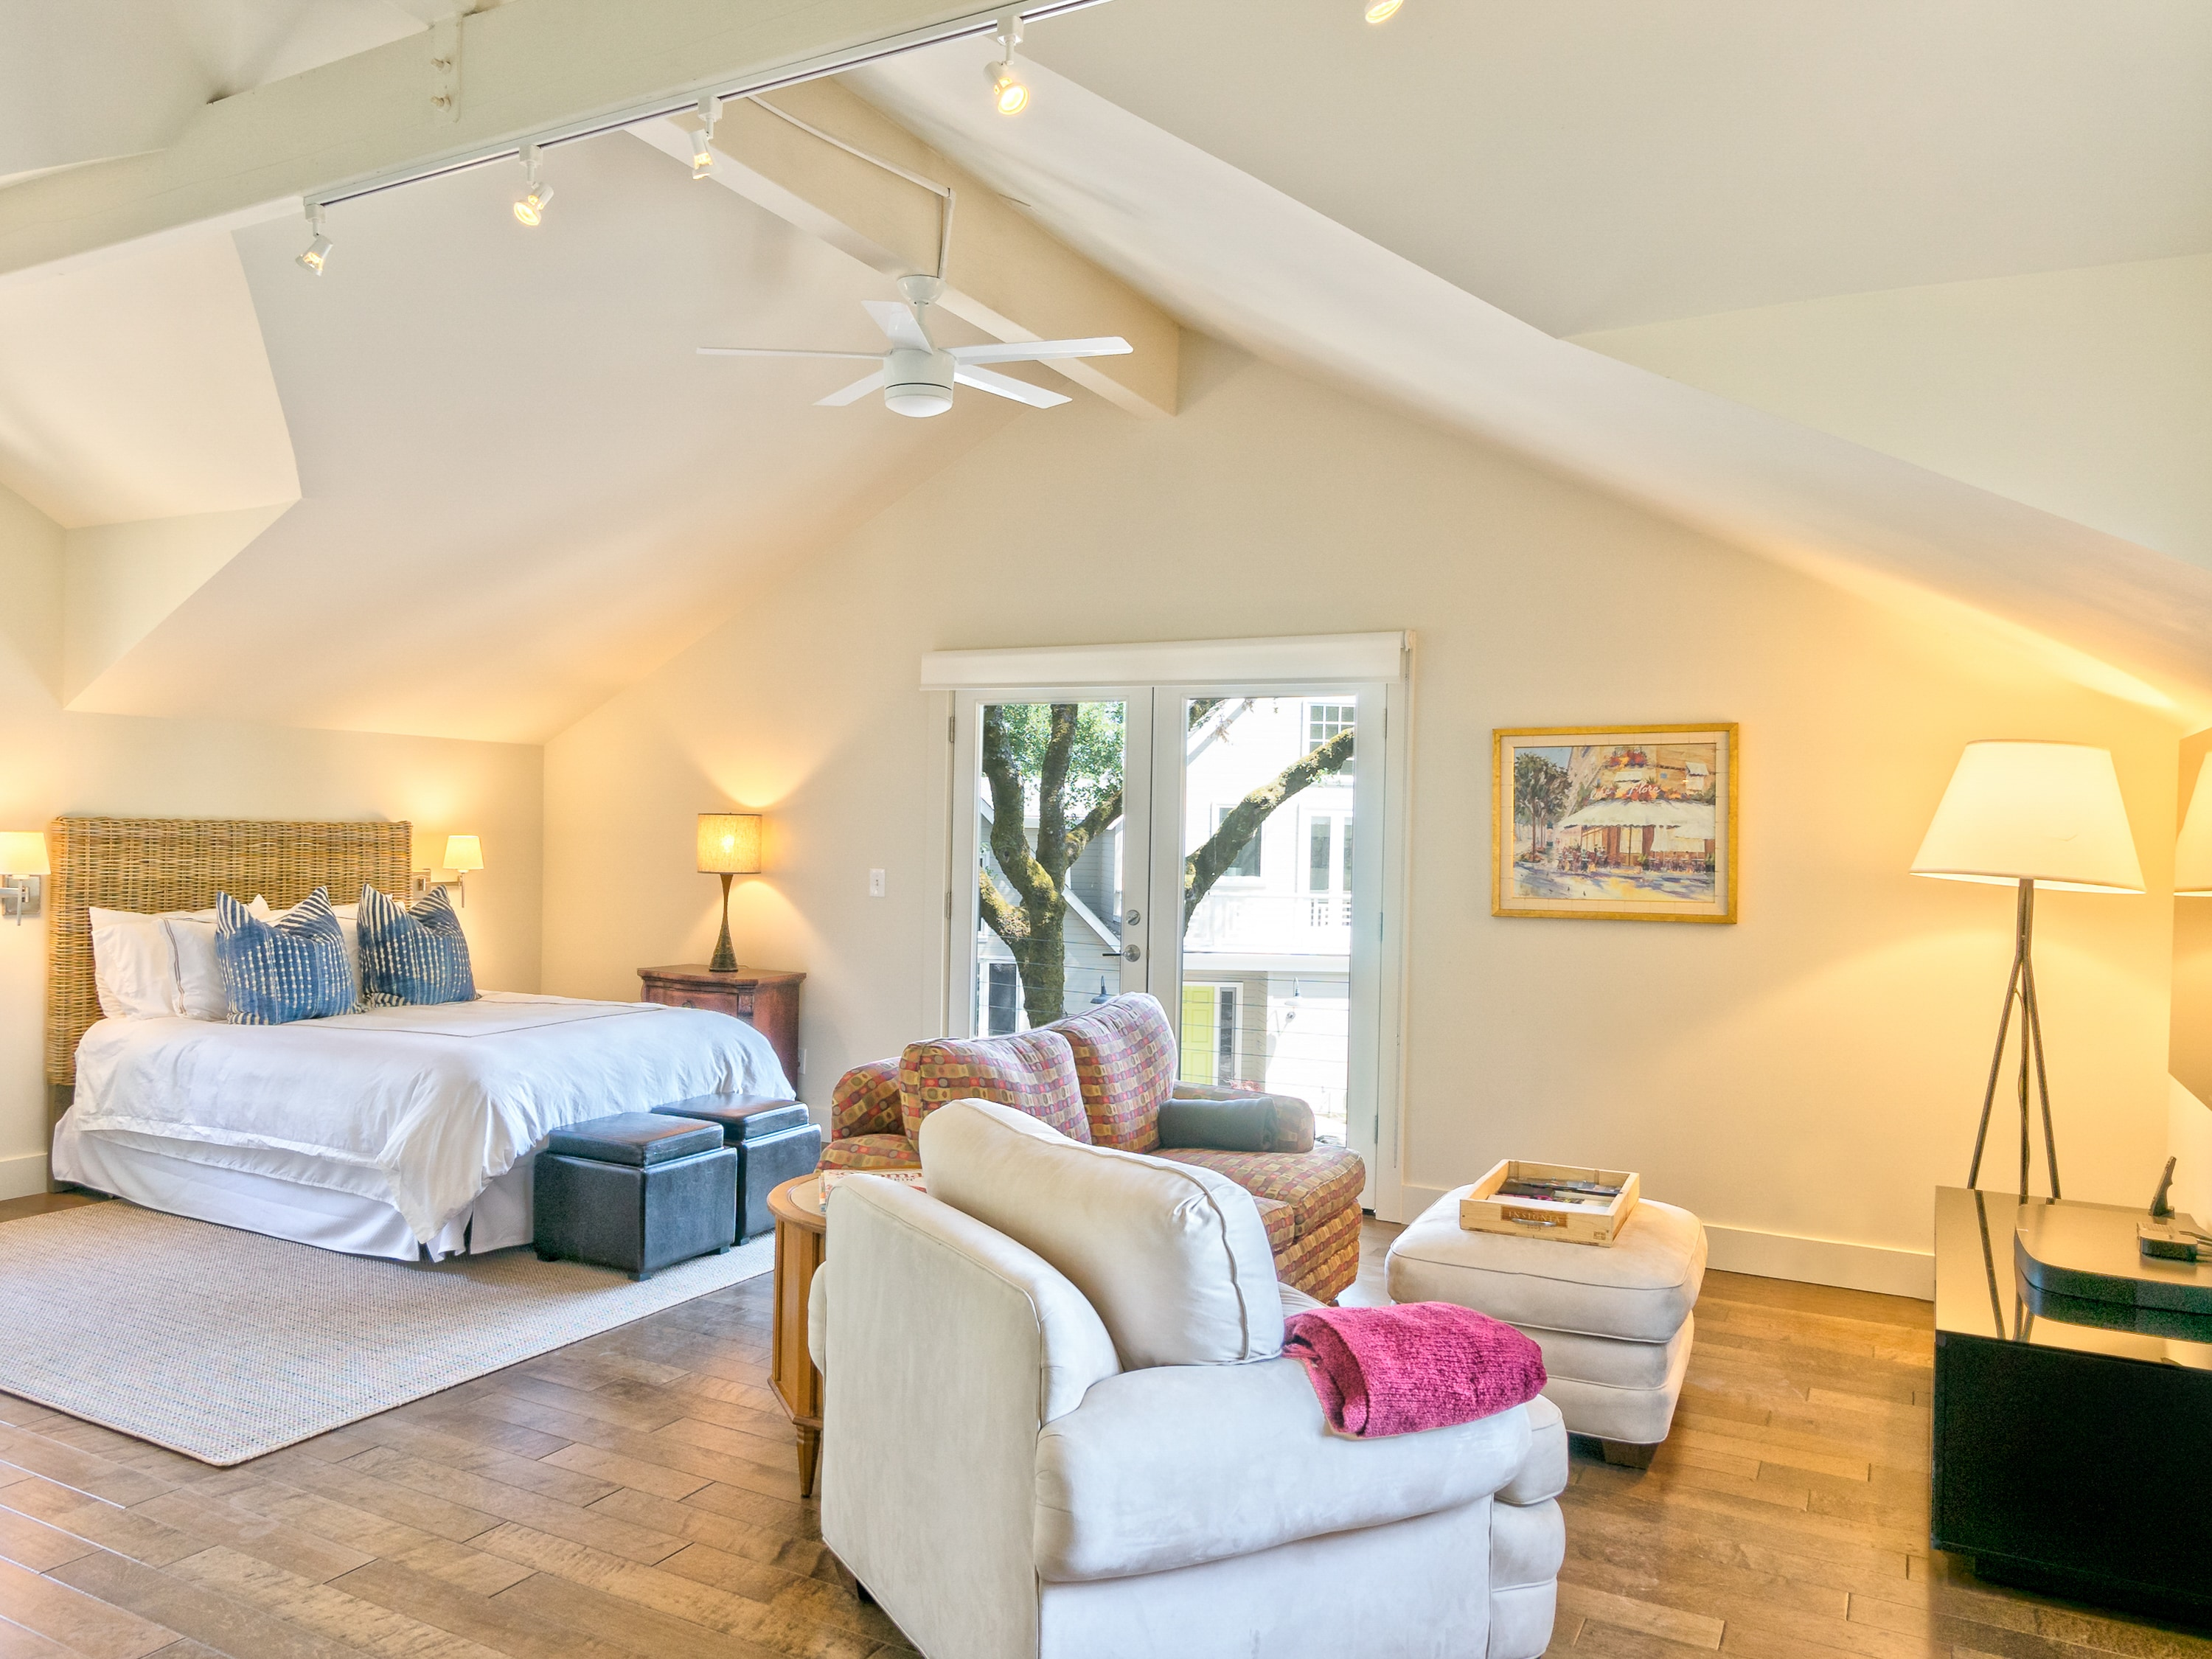 900 sq. ft. studio-style loft space with queen bed and high ceilings.